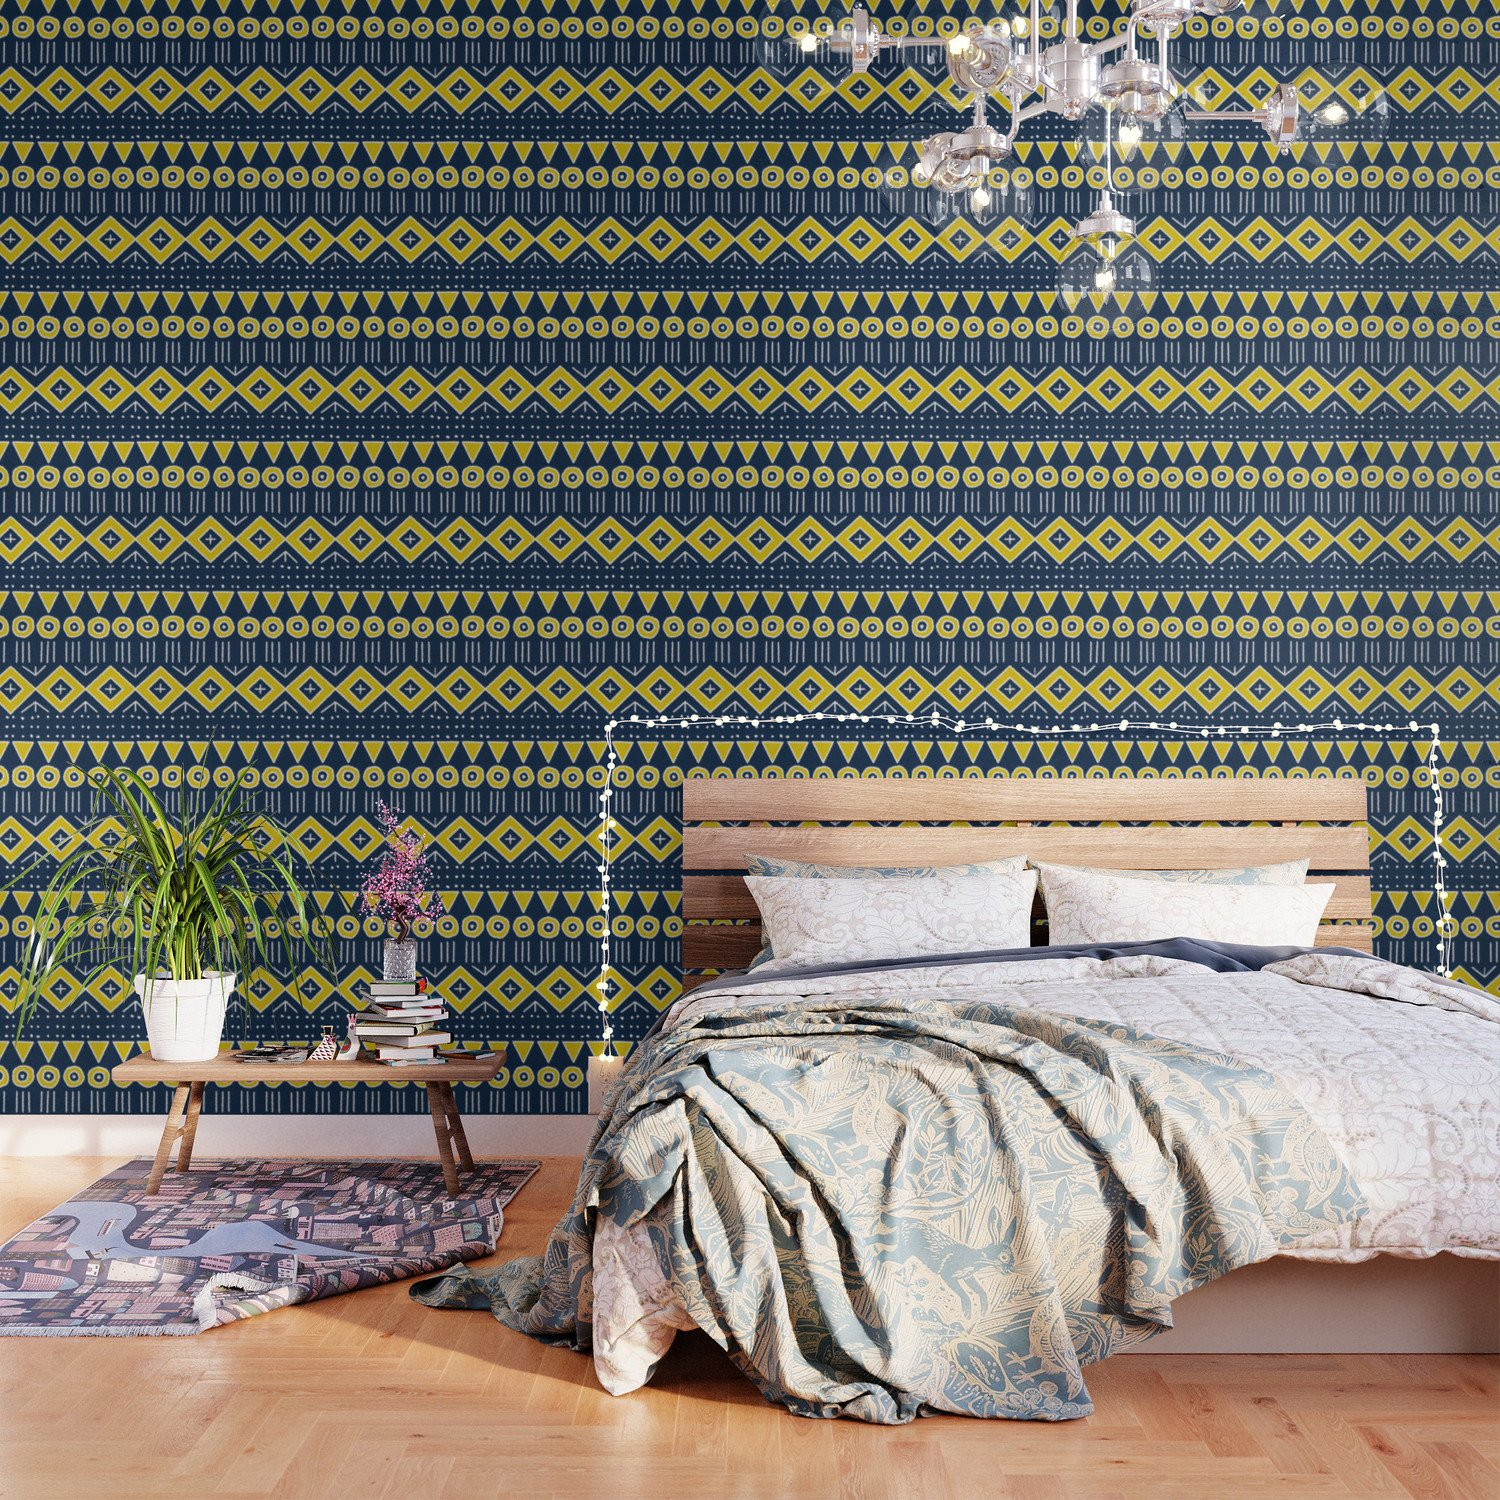 Navy Blue and Yellow Bedroom Lovely Mudcloth Style 2 In Navy Blue and Yellow Wallpaper